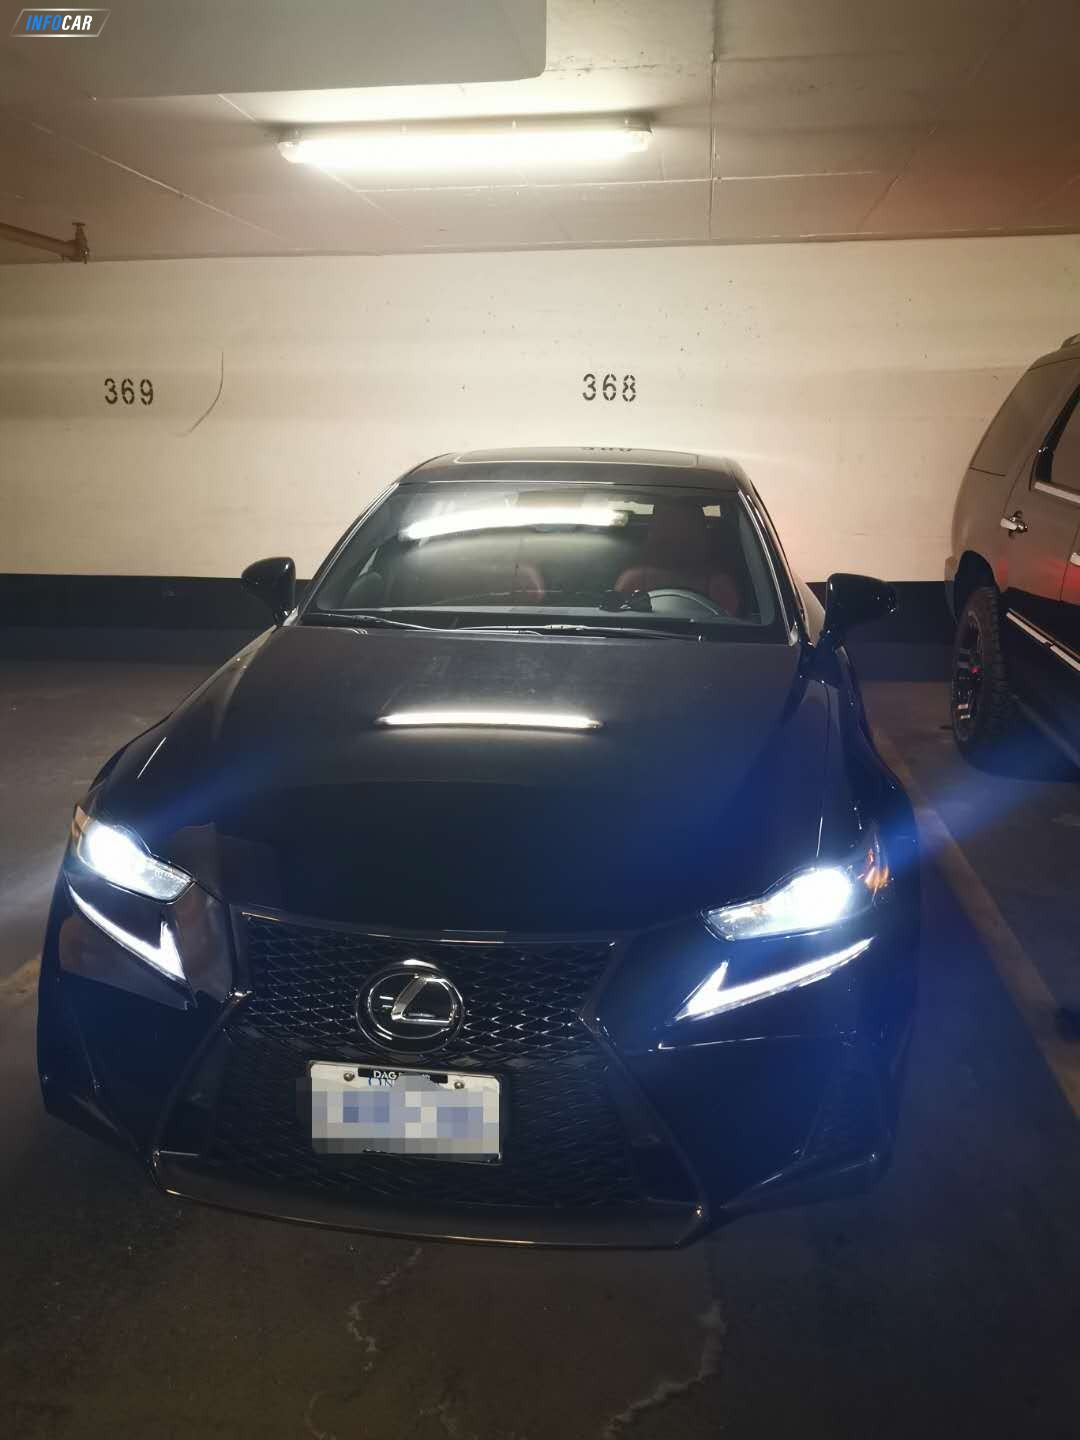 2018 Lexus IS Is350 F AWD  - INFOCAR - Toronto's Most Comprehensive New and Used Auto Trading Platform